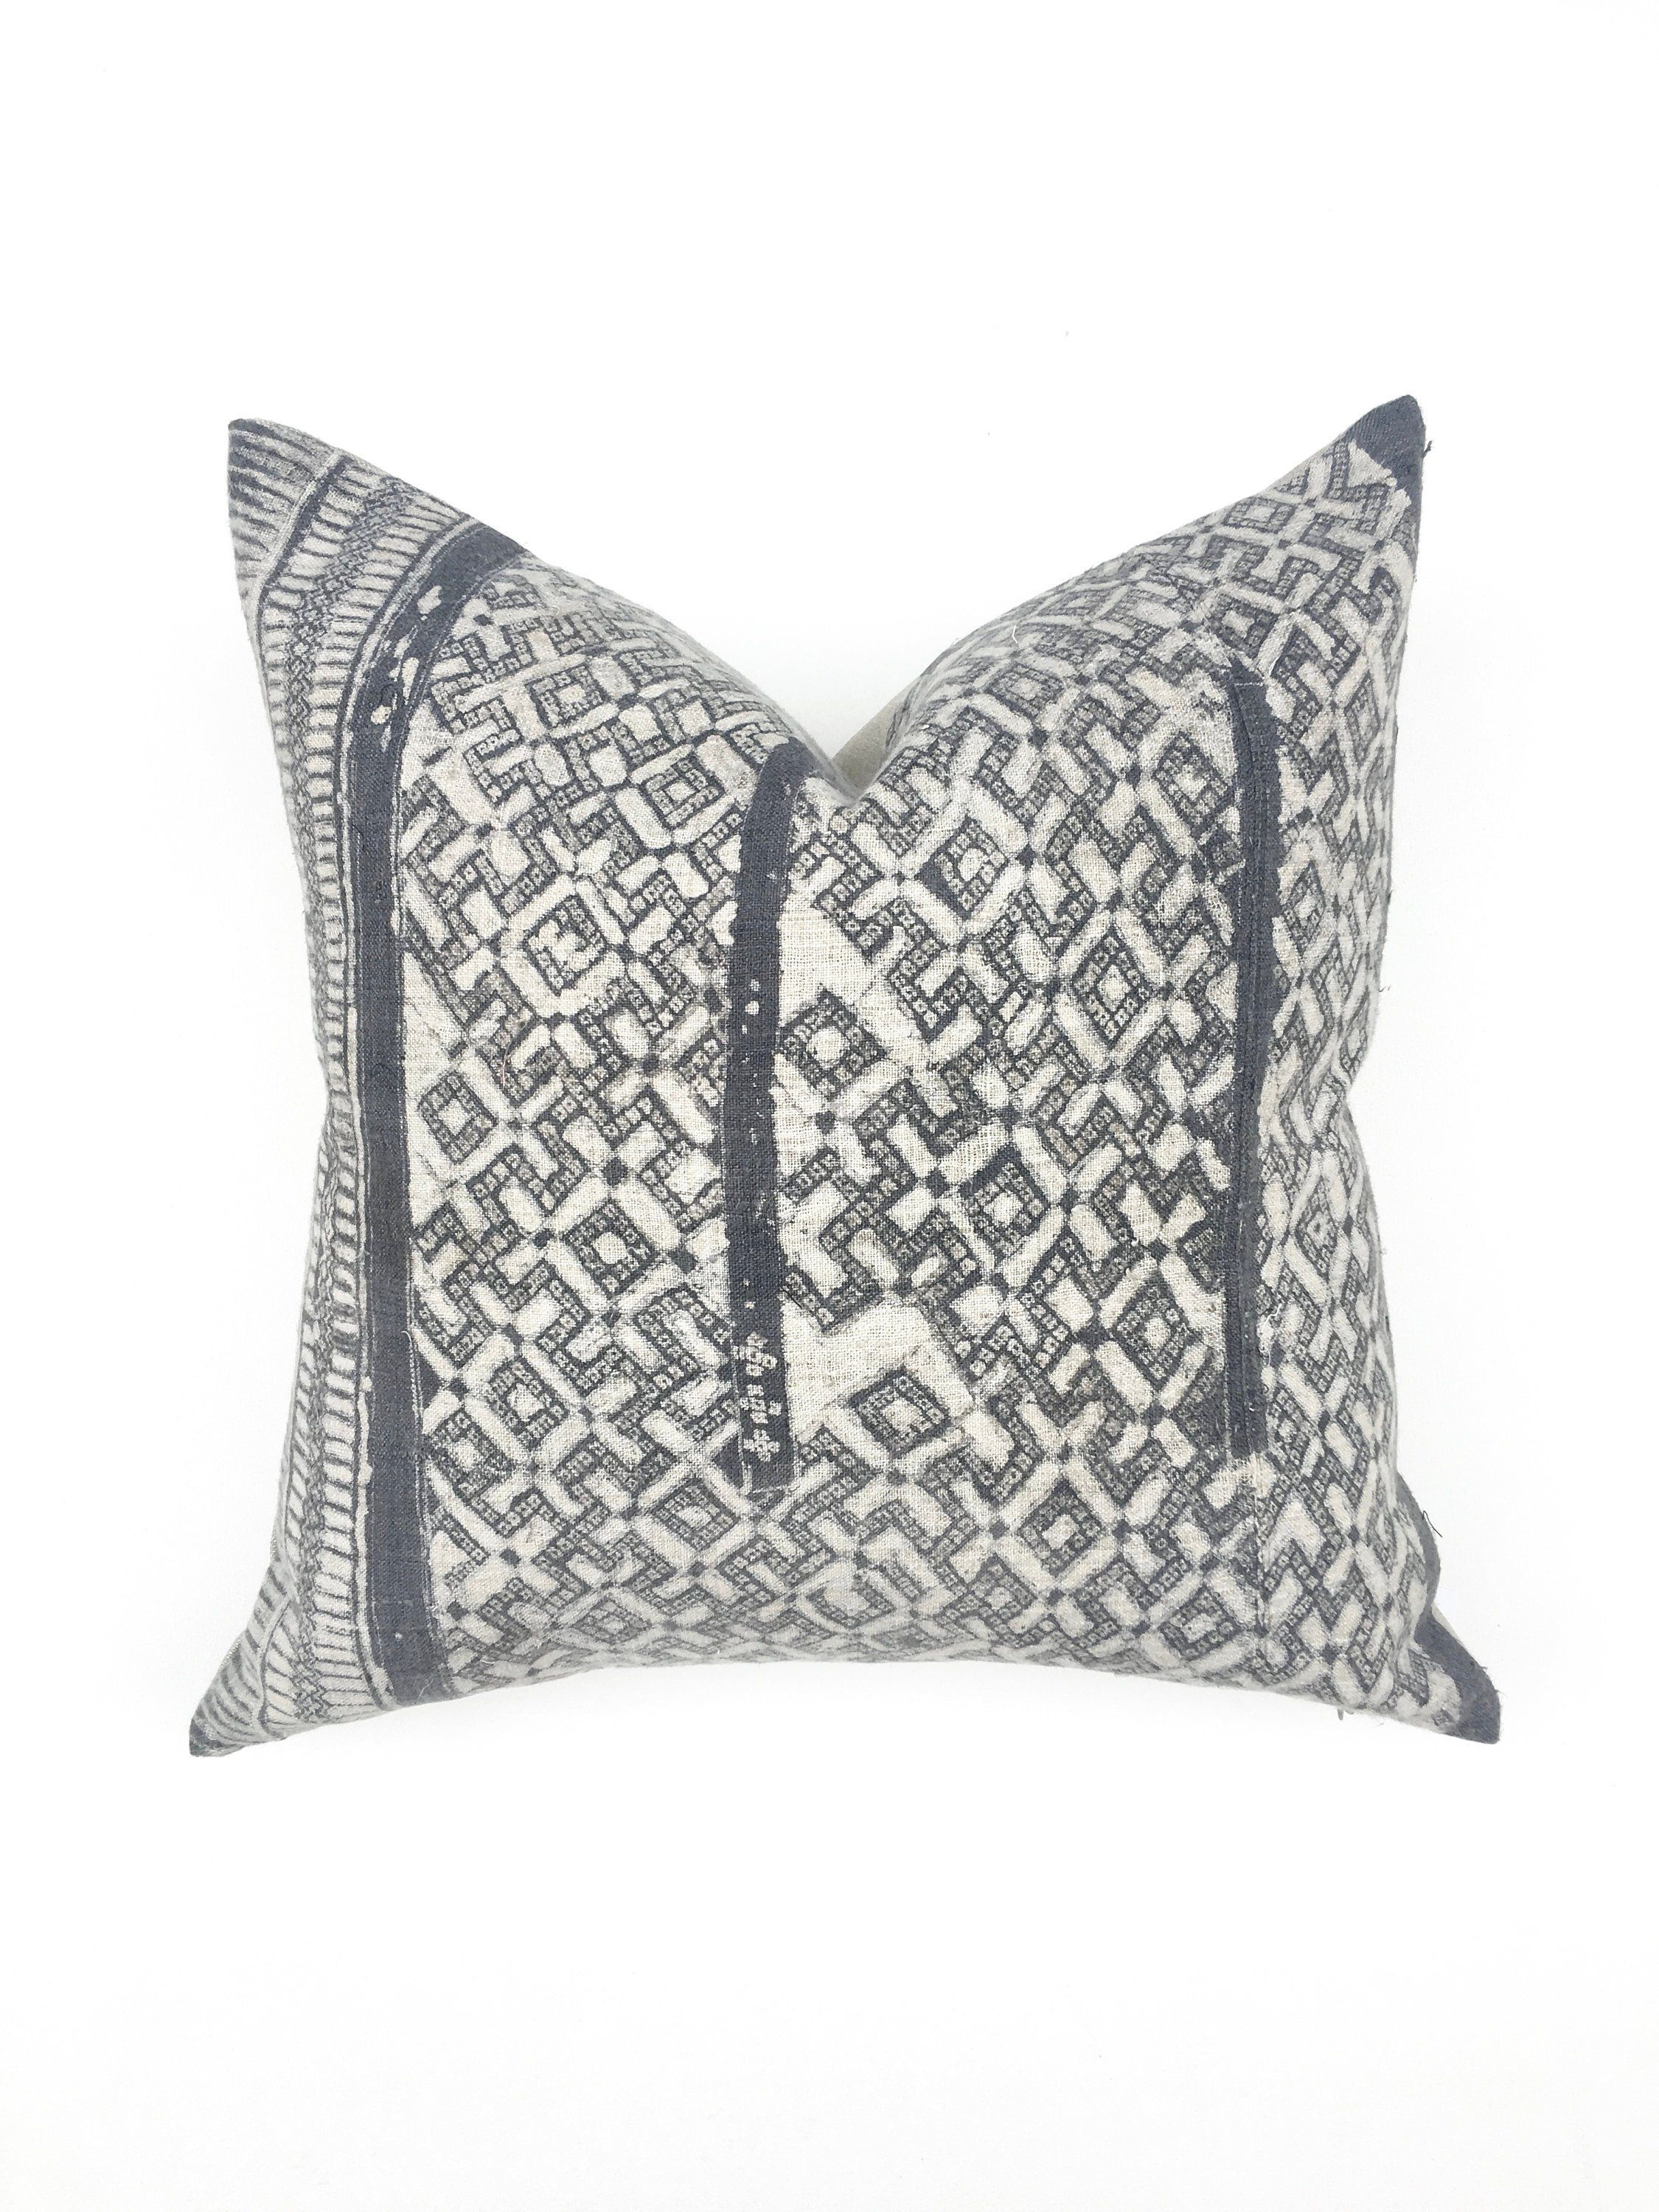 Chinese Hill Tribe Square Pillow Cover